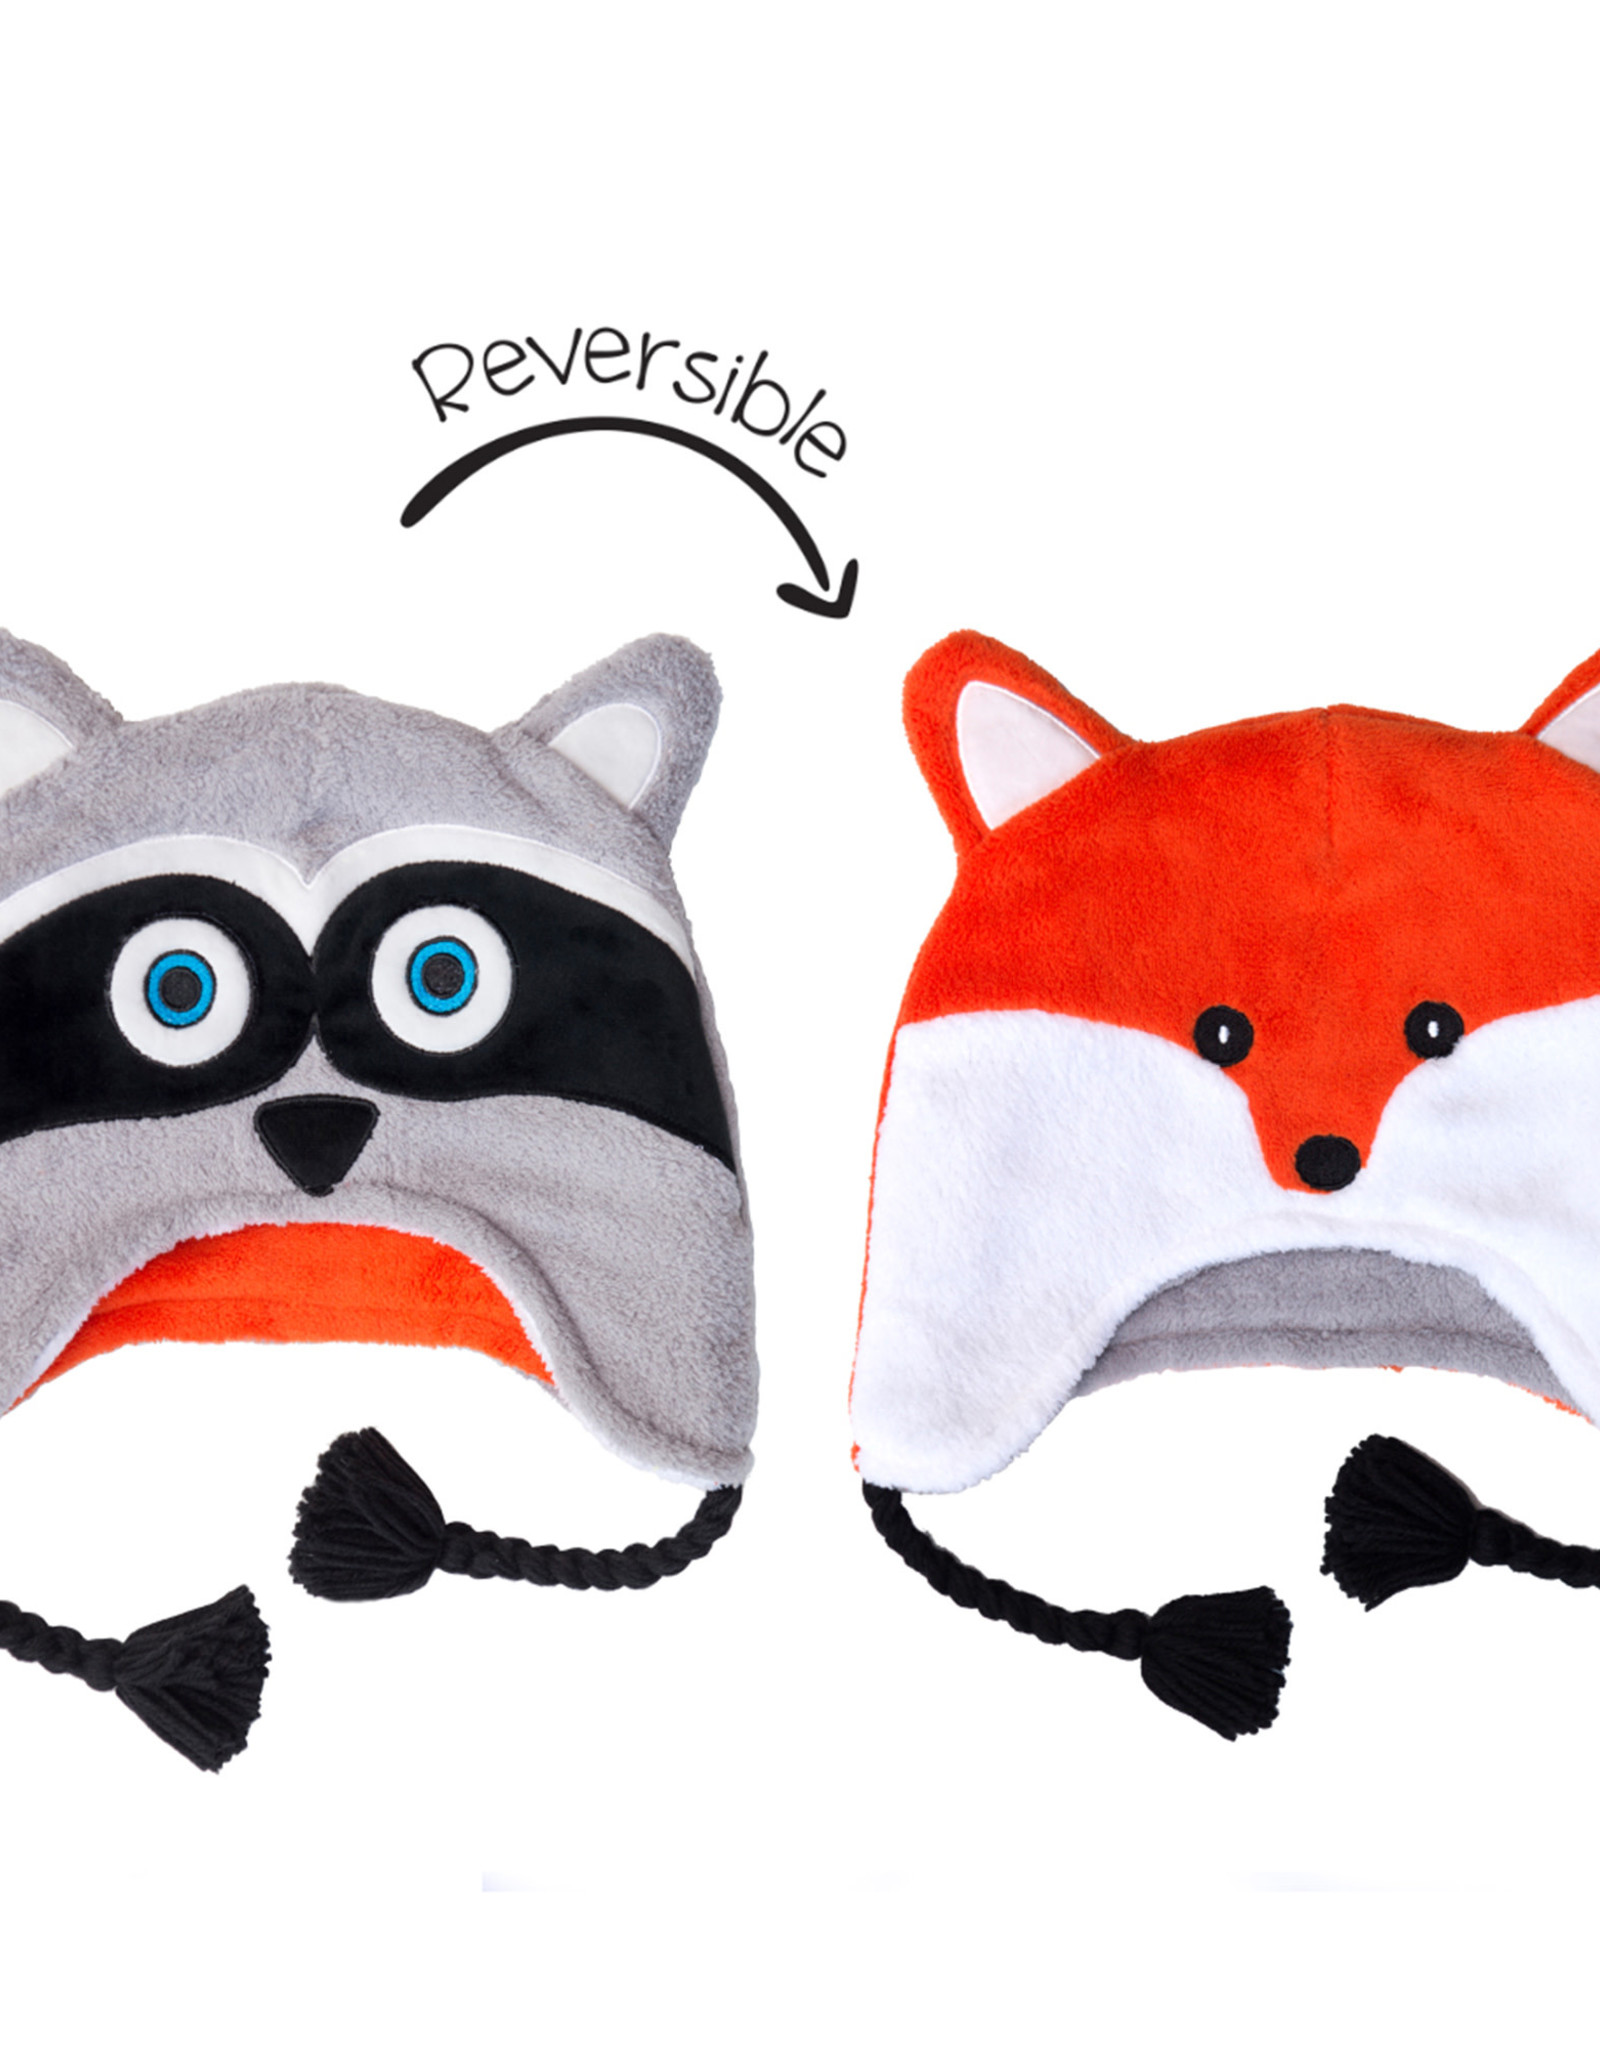 FlapJackKids FlapJackKids Reversible Fleece Hat - Raccoon/Fox - Youth 3-8